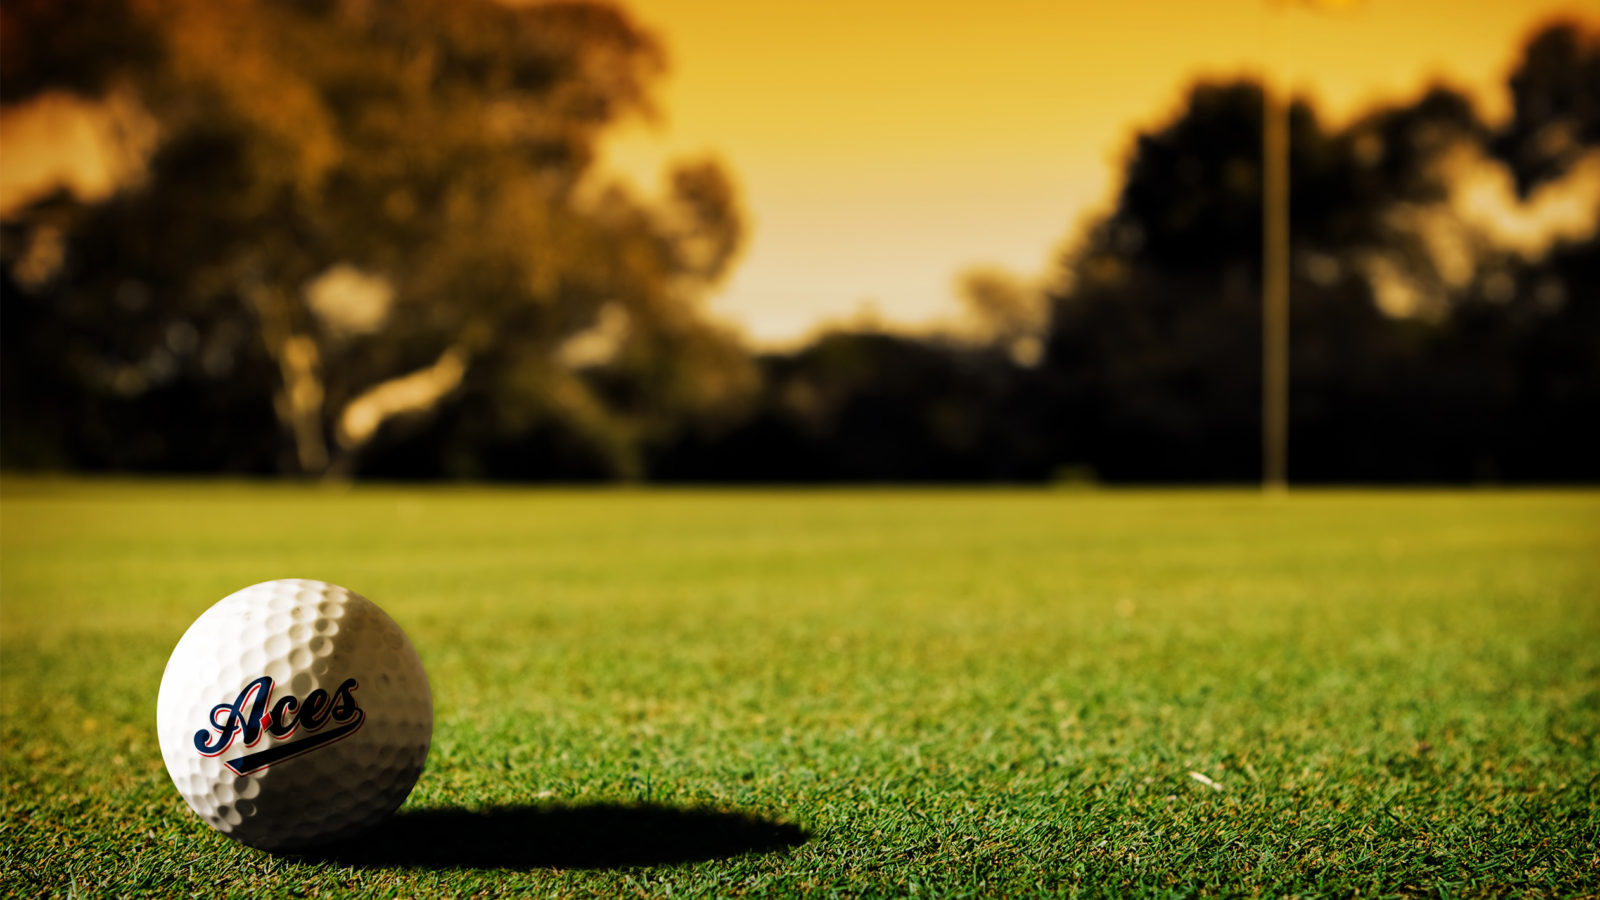 Header Image for Aces Golf - April 5th